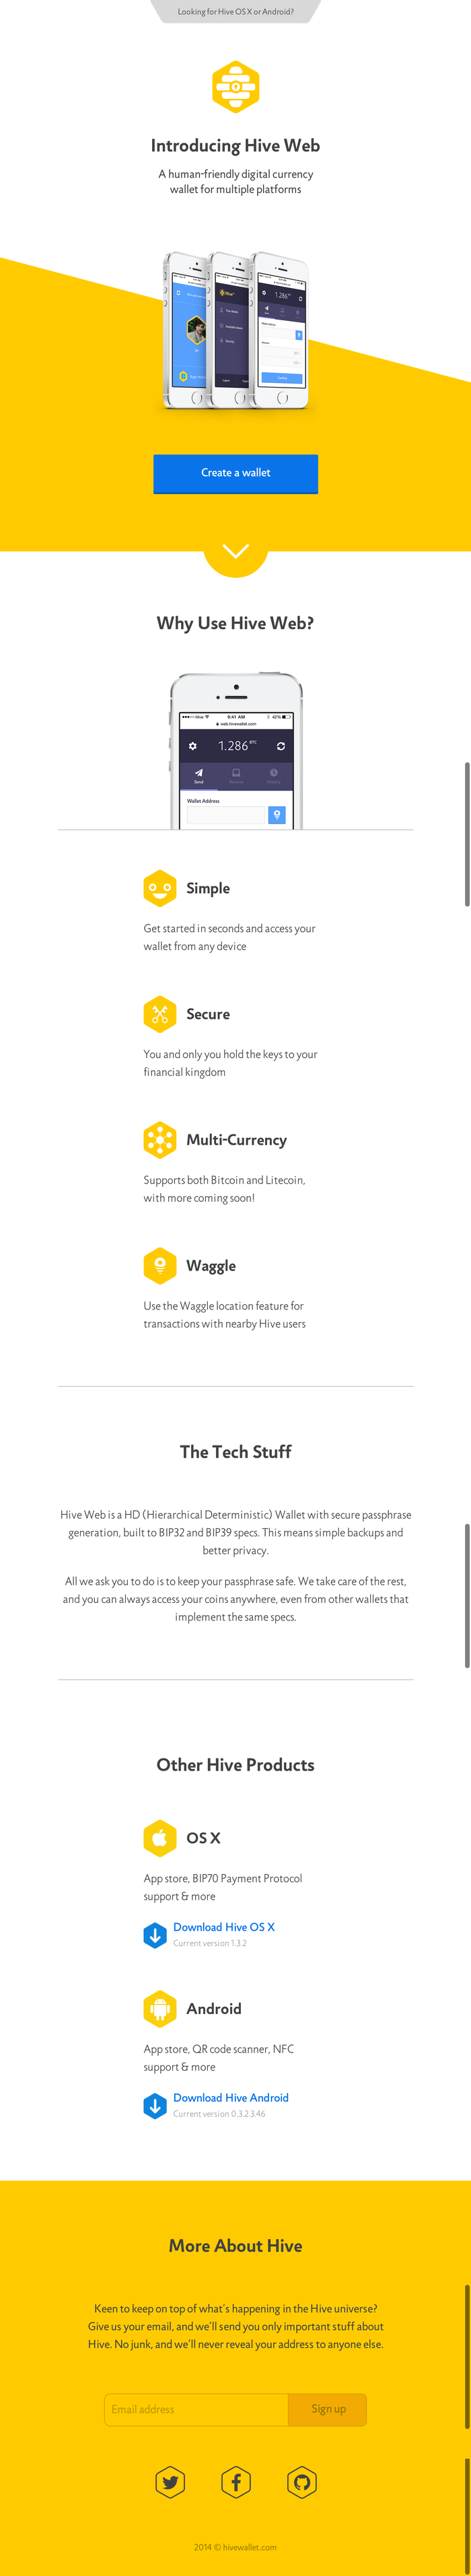 Hive Web and Hive Wallet 3